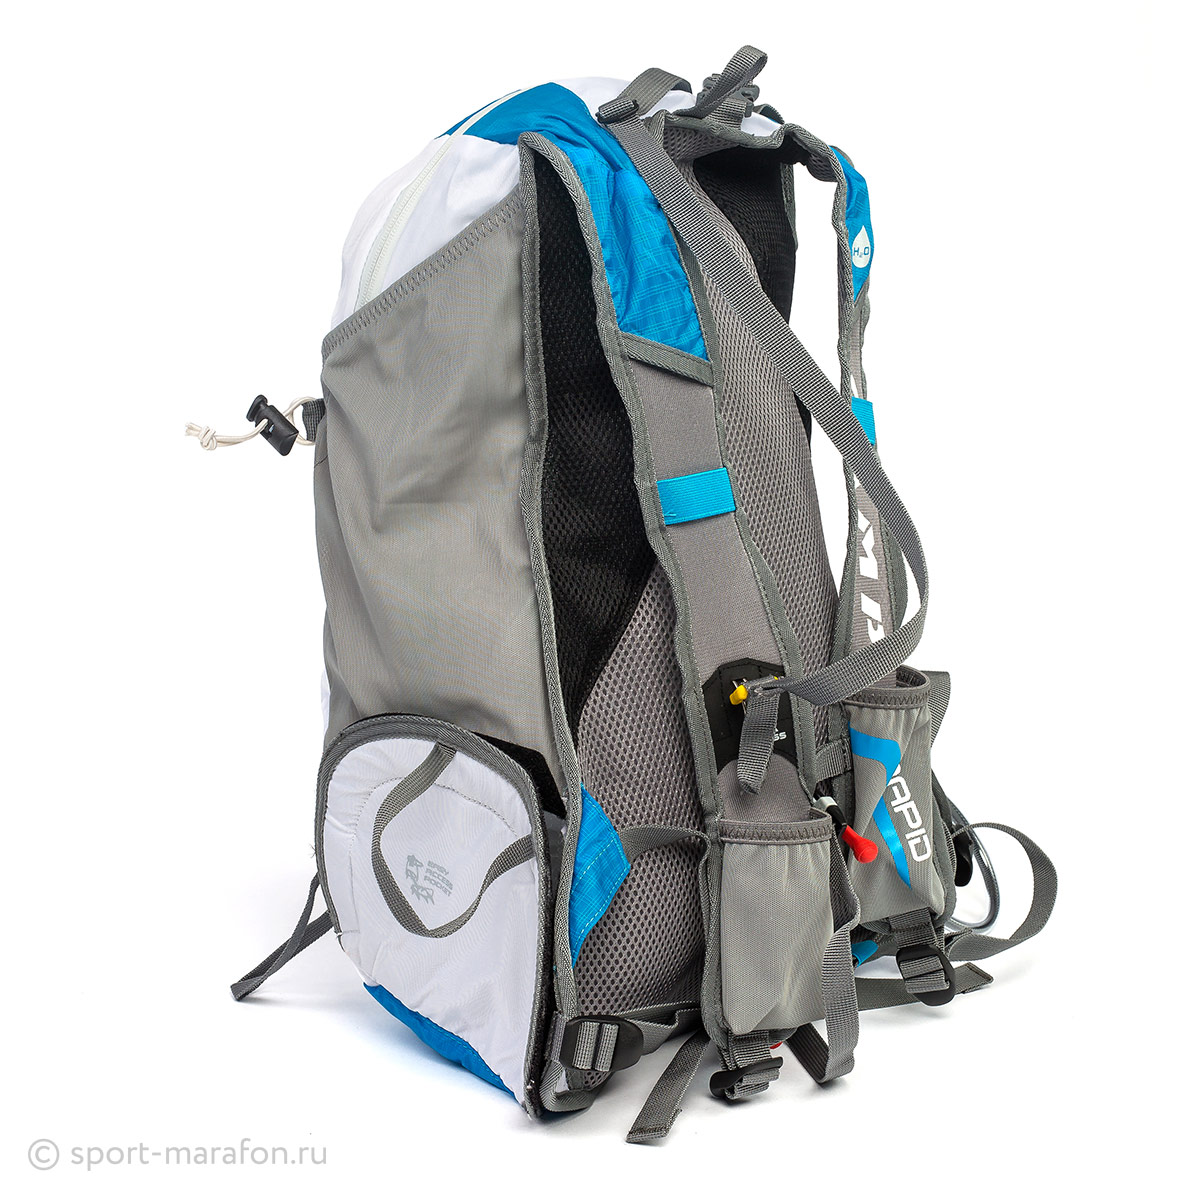 Рюкзак Camp Rapid 20 White/Light Blue - Фото 5 большая